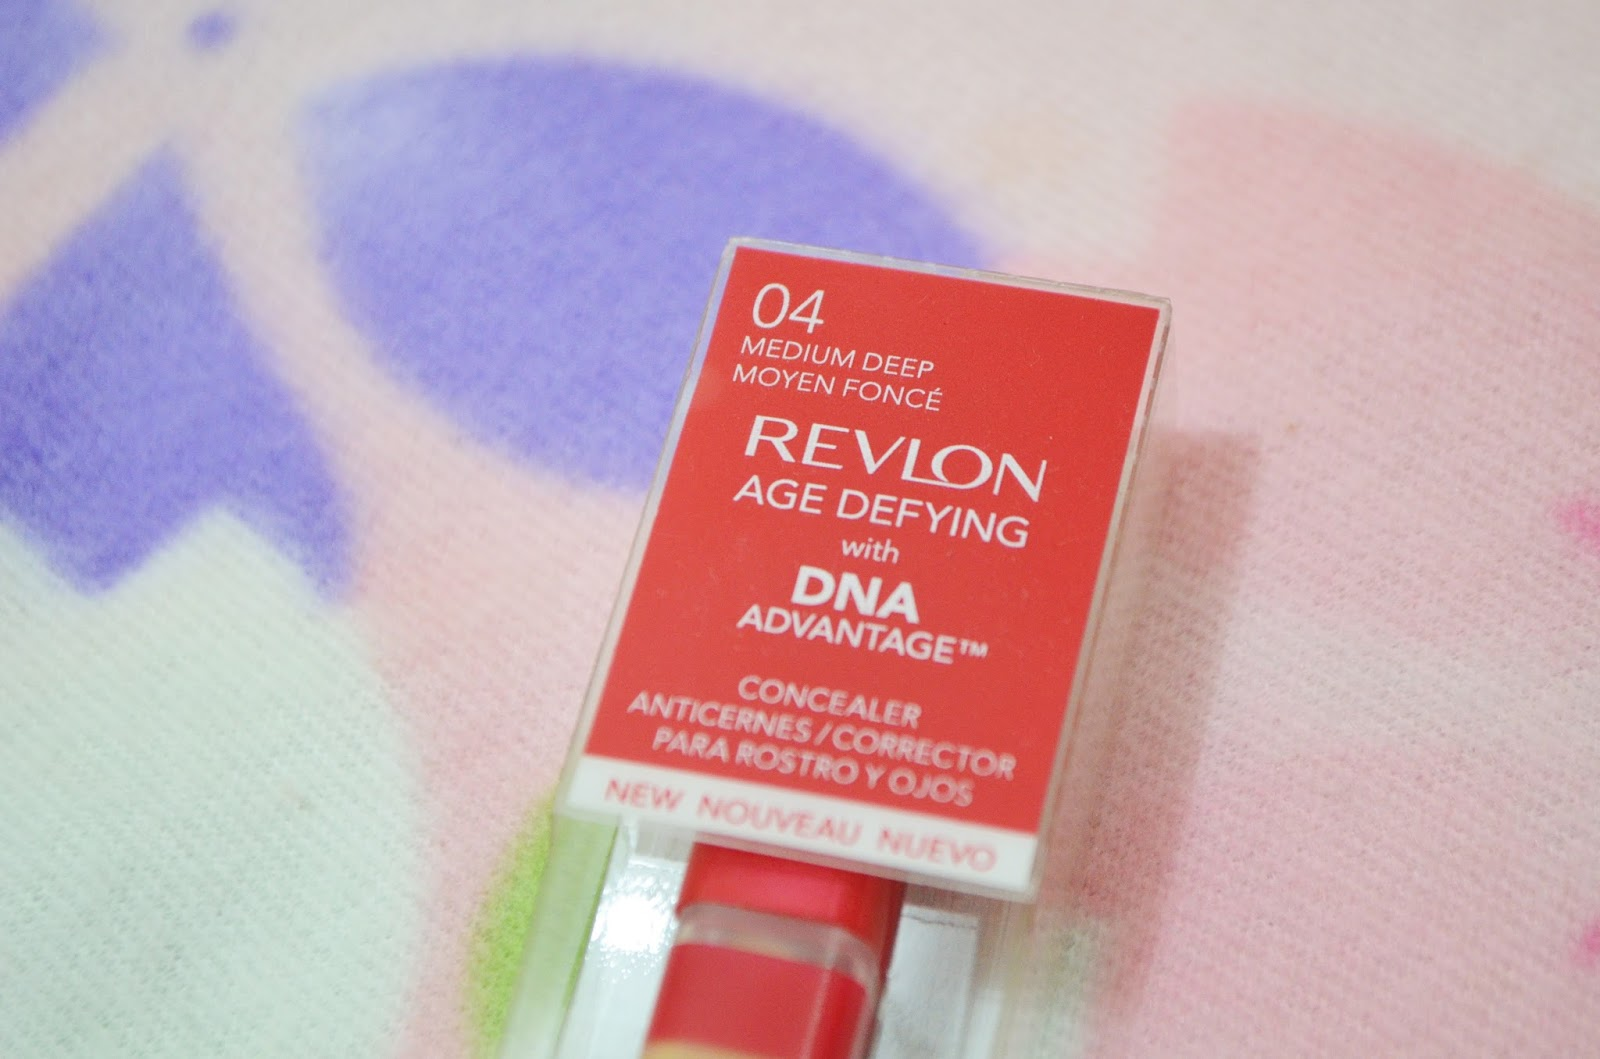 Revlon Age Defying DNA Advantage Concealer Review